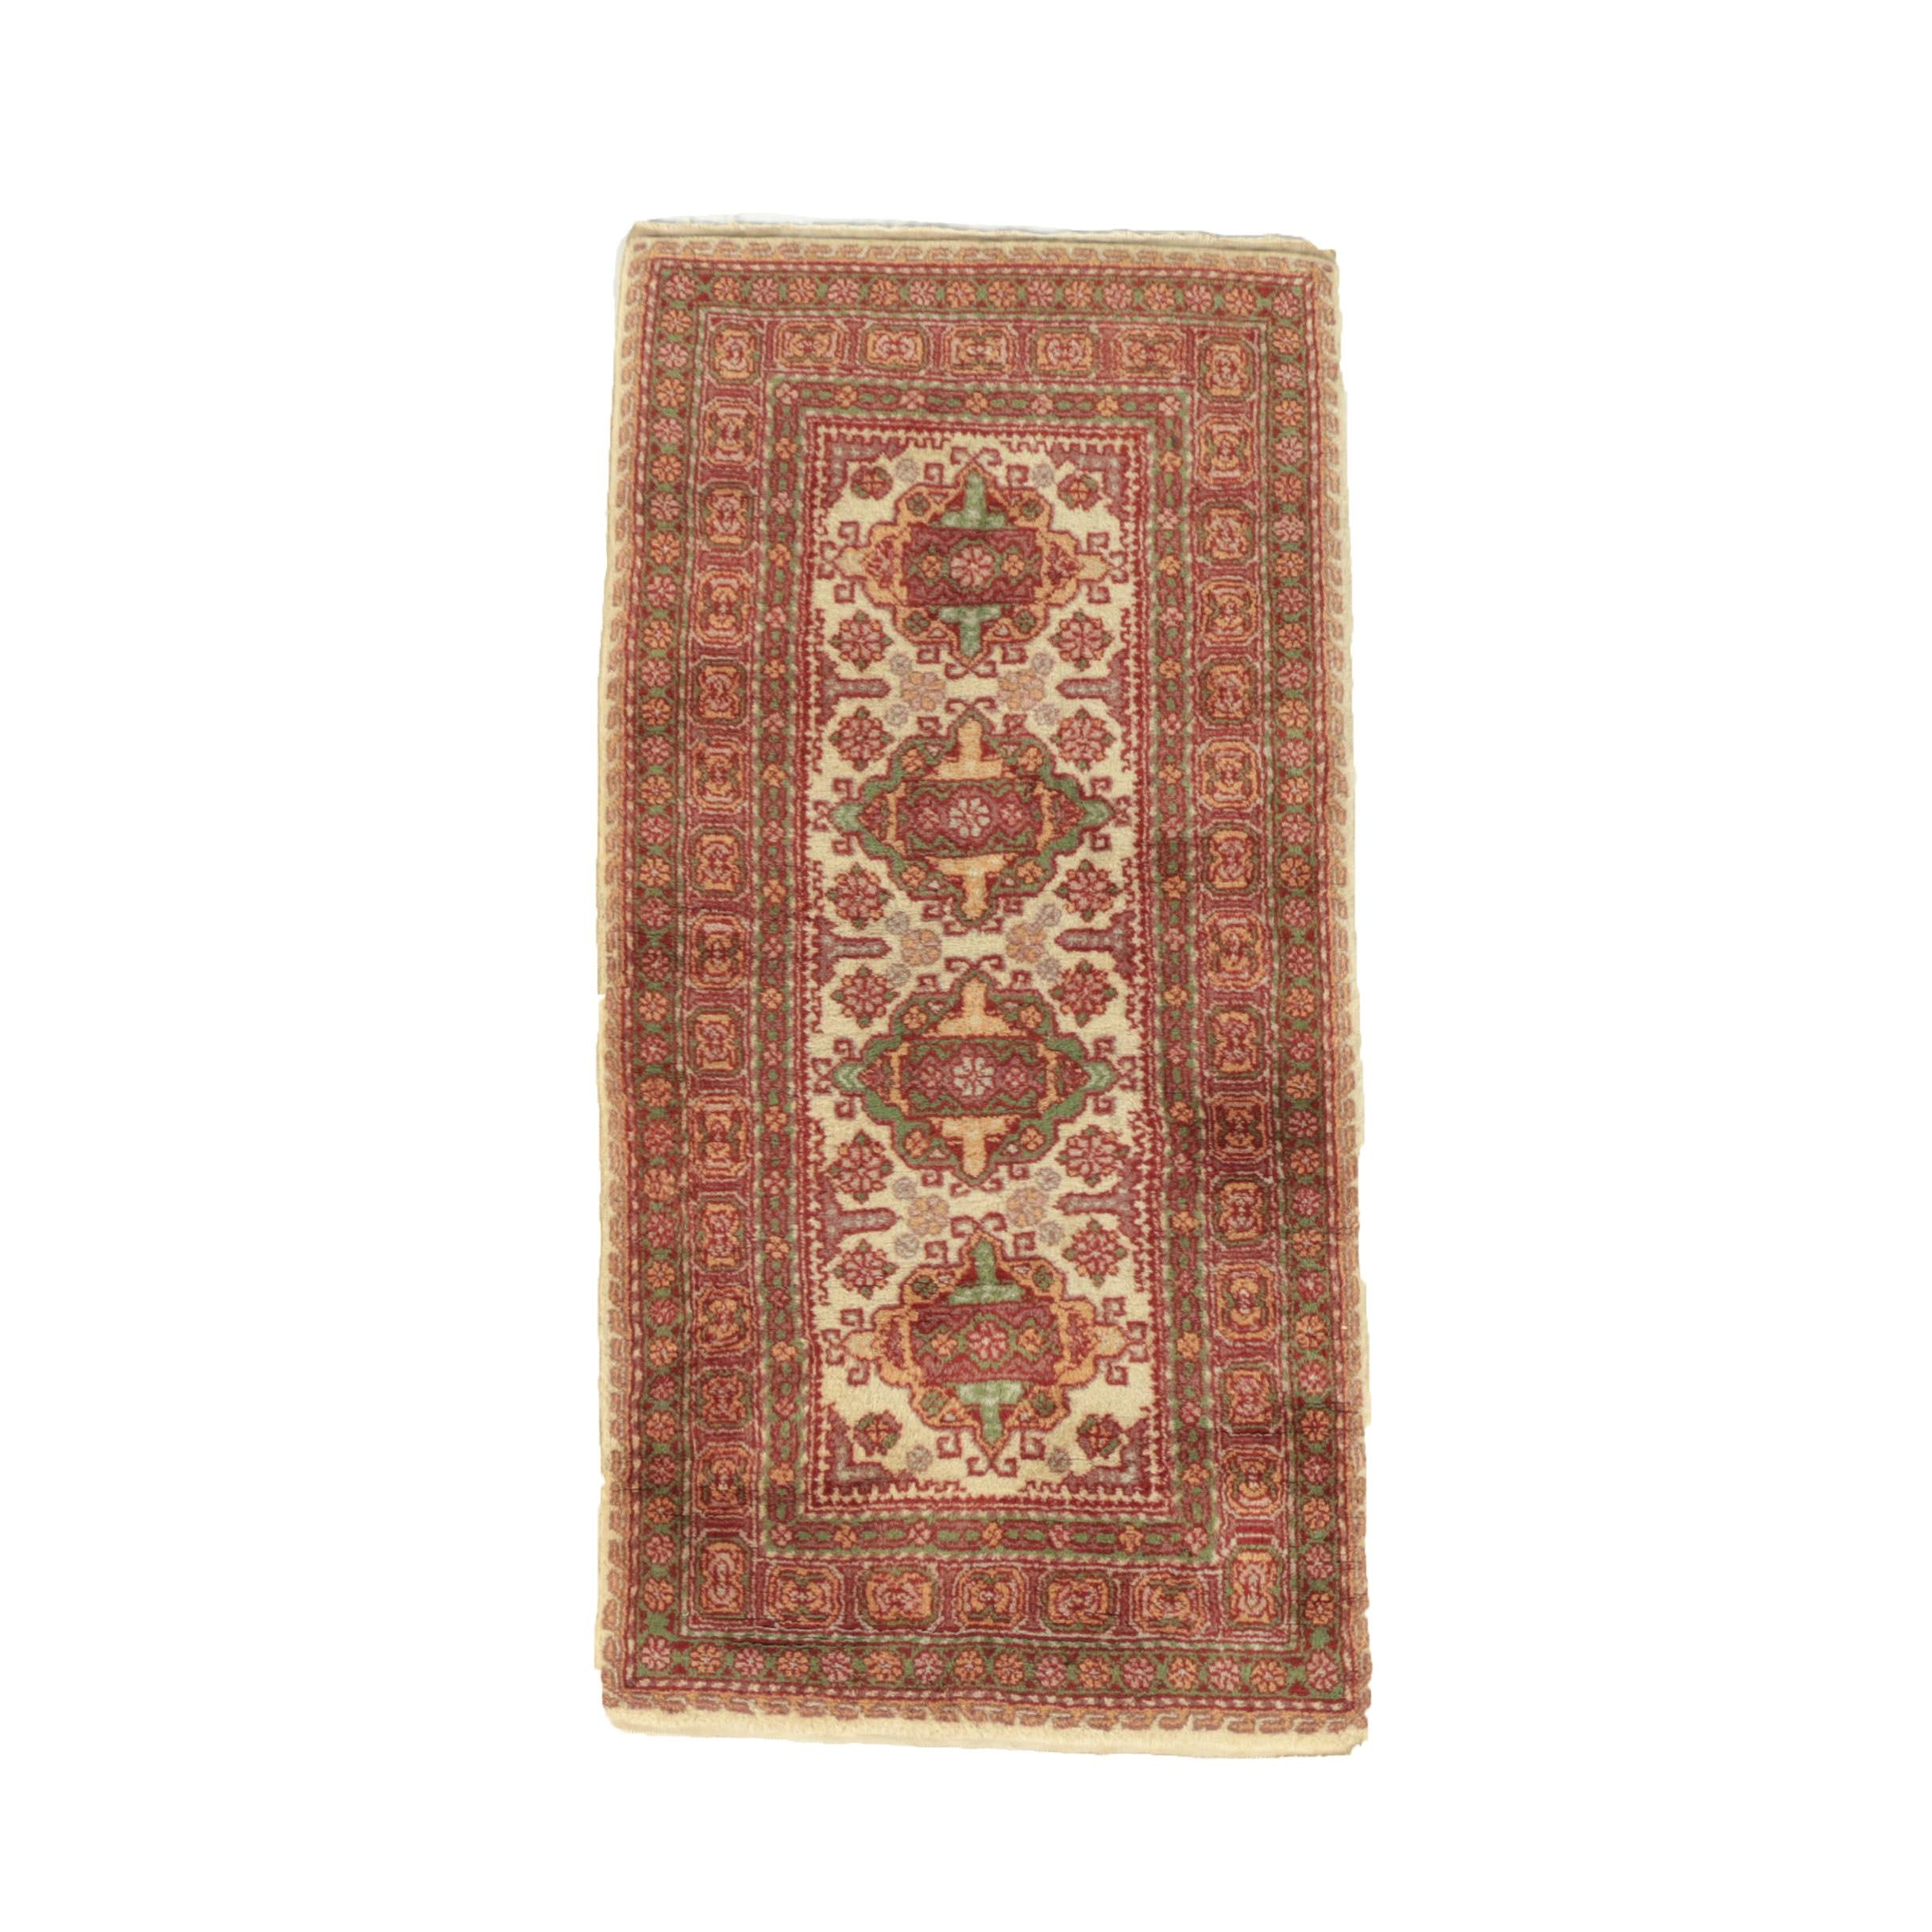 Hand-Knotted Indo-Persian Wool Accent Rug